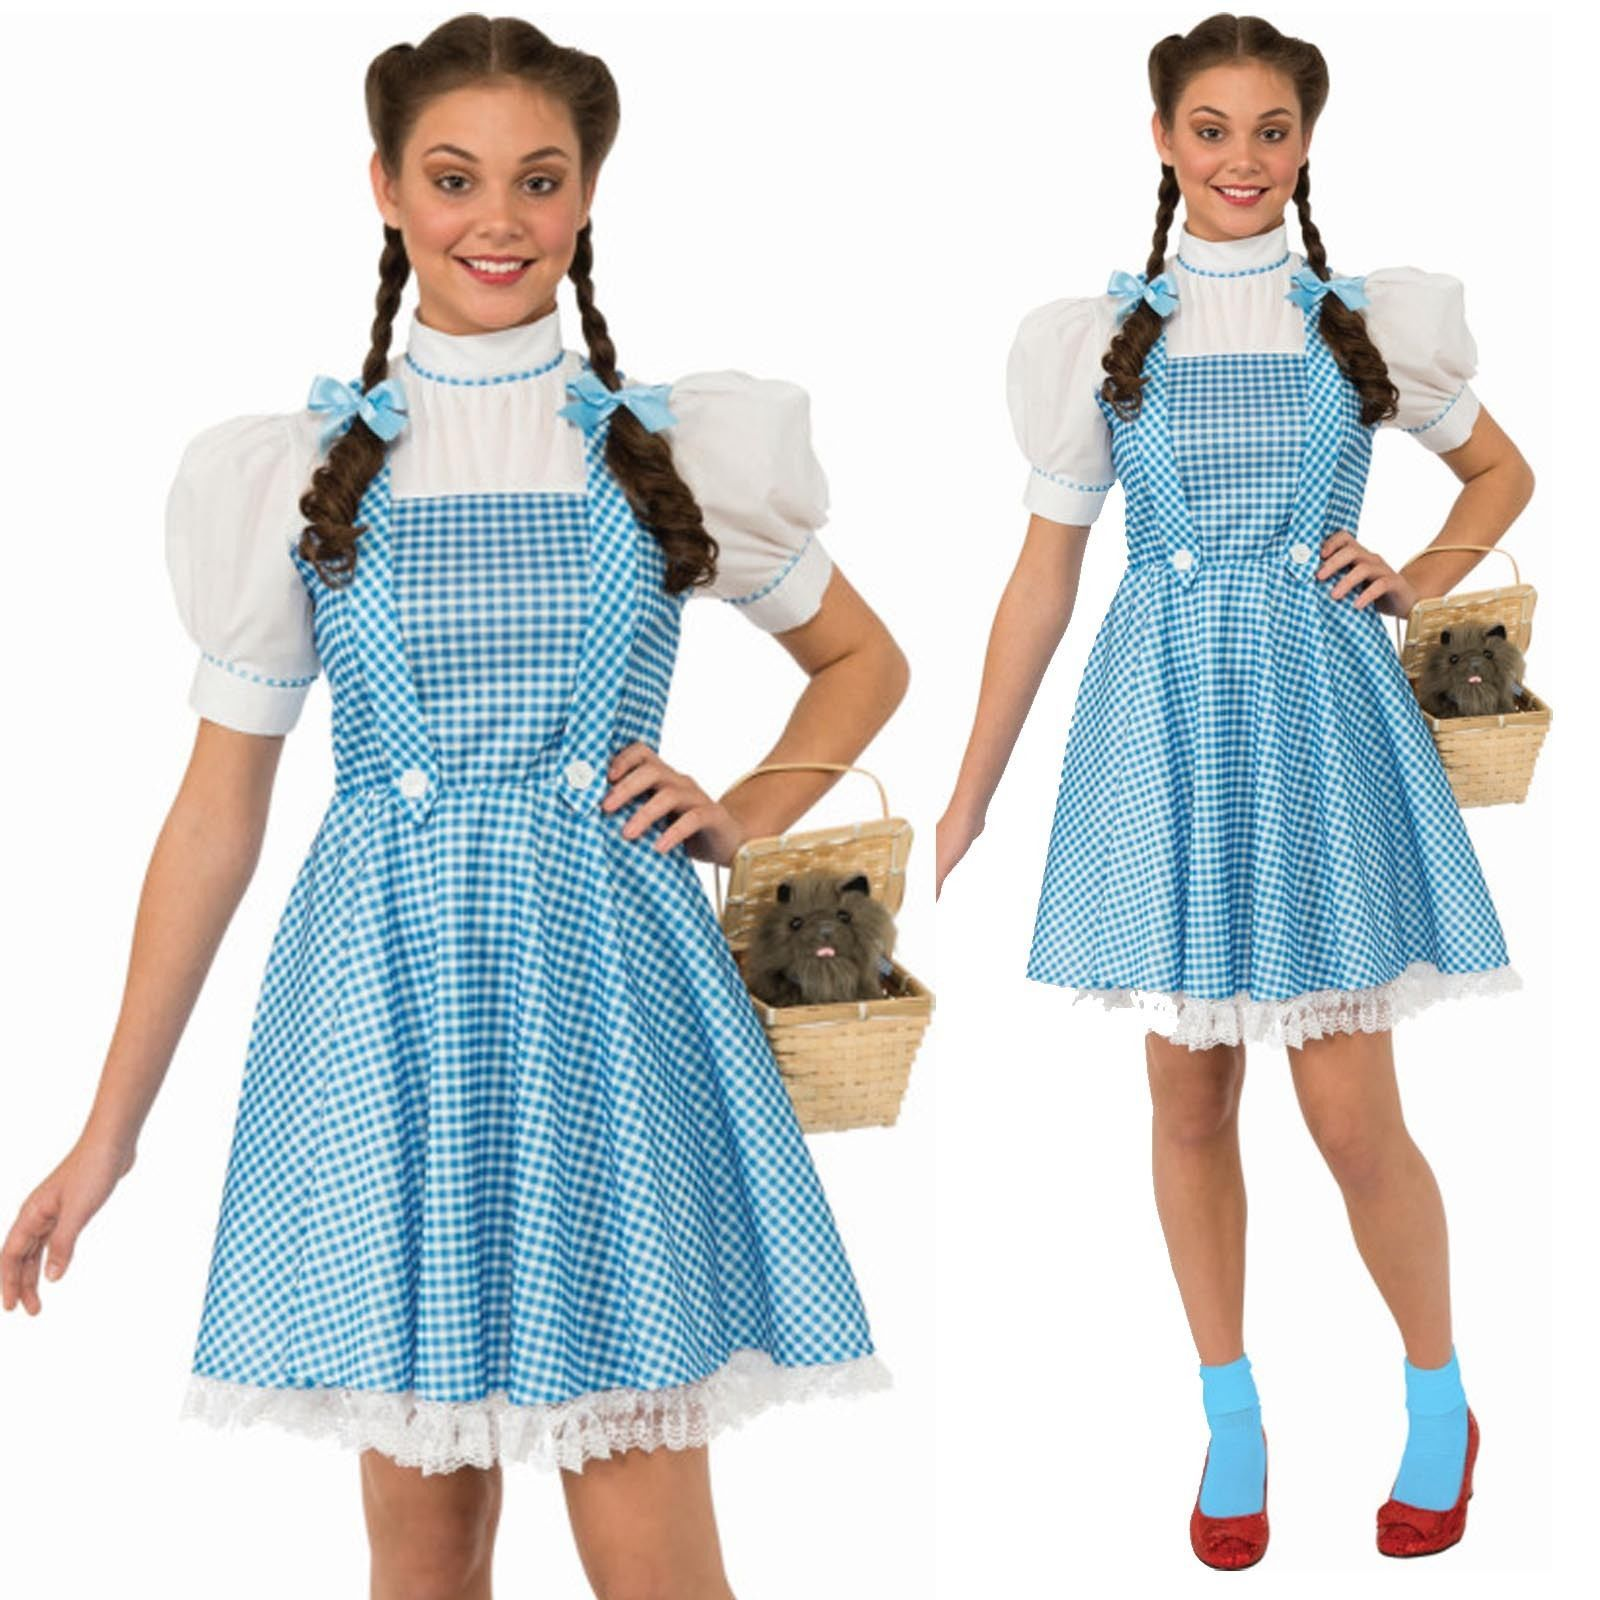 New Dorothy Costume Wizard of Oz Adult Licensed Fancy Dress Disney | eBay  sc 1 st  Pinterest & Dorothy deluxe costume adult | Costumes and Halloween costumes